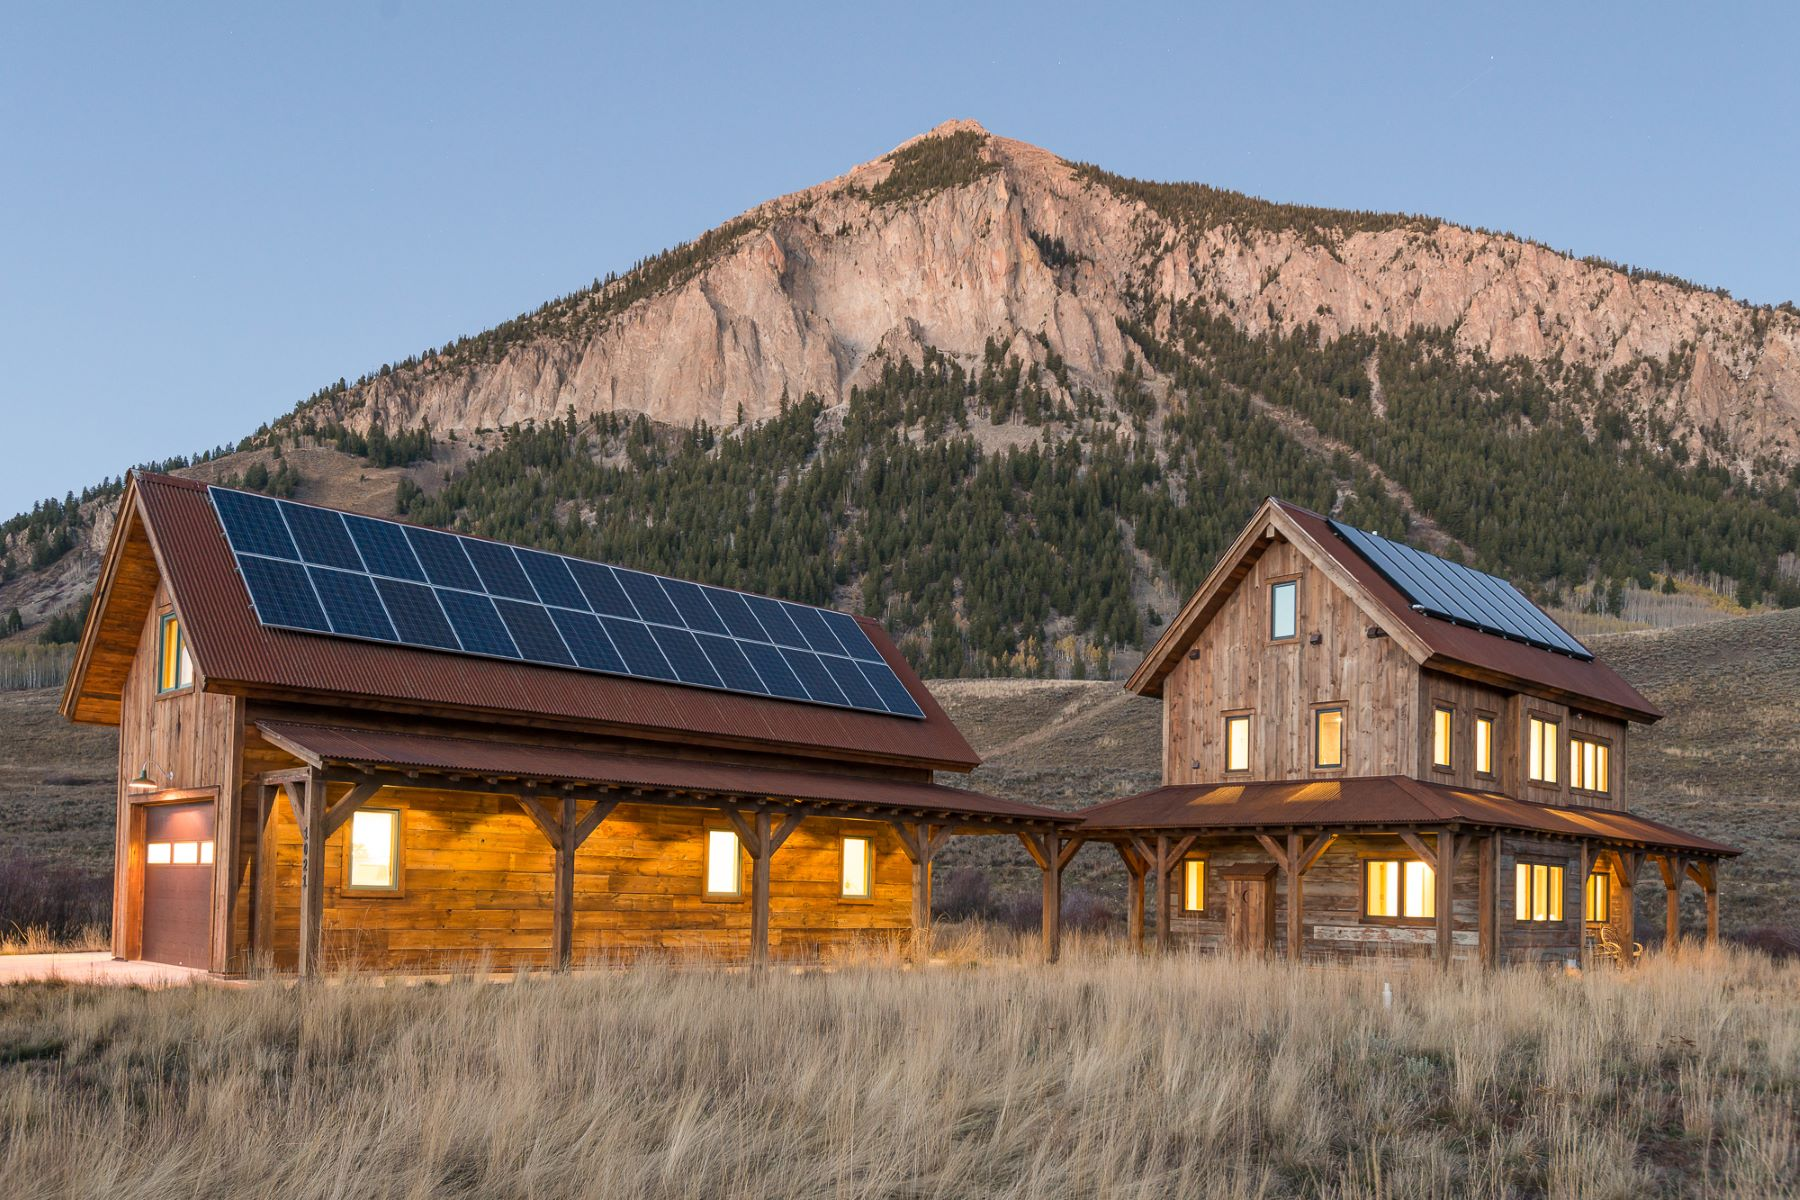 Single Family Home for Sale at Harmonious Luxury Home 1021 McCormick Ranch Road Crested Butte, Colorado 81224 United States